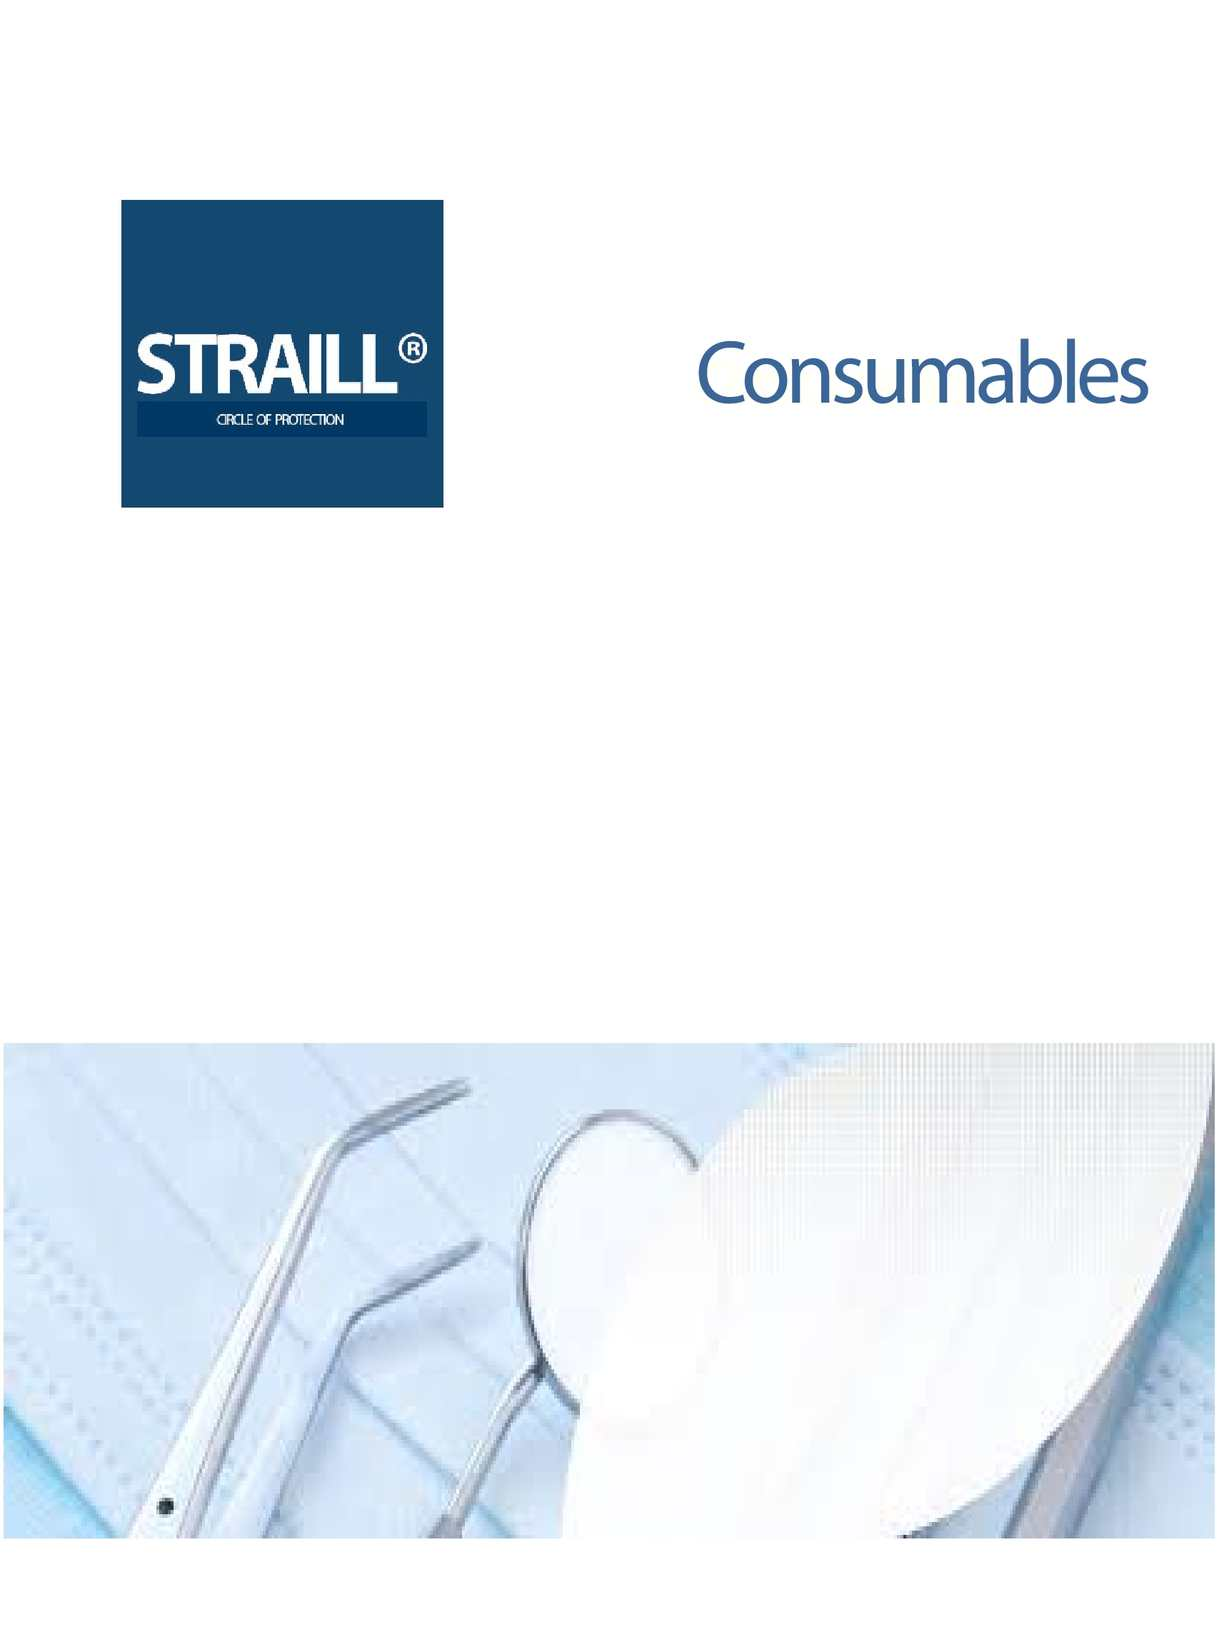 Straill Consumables